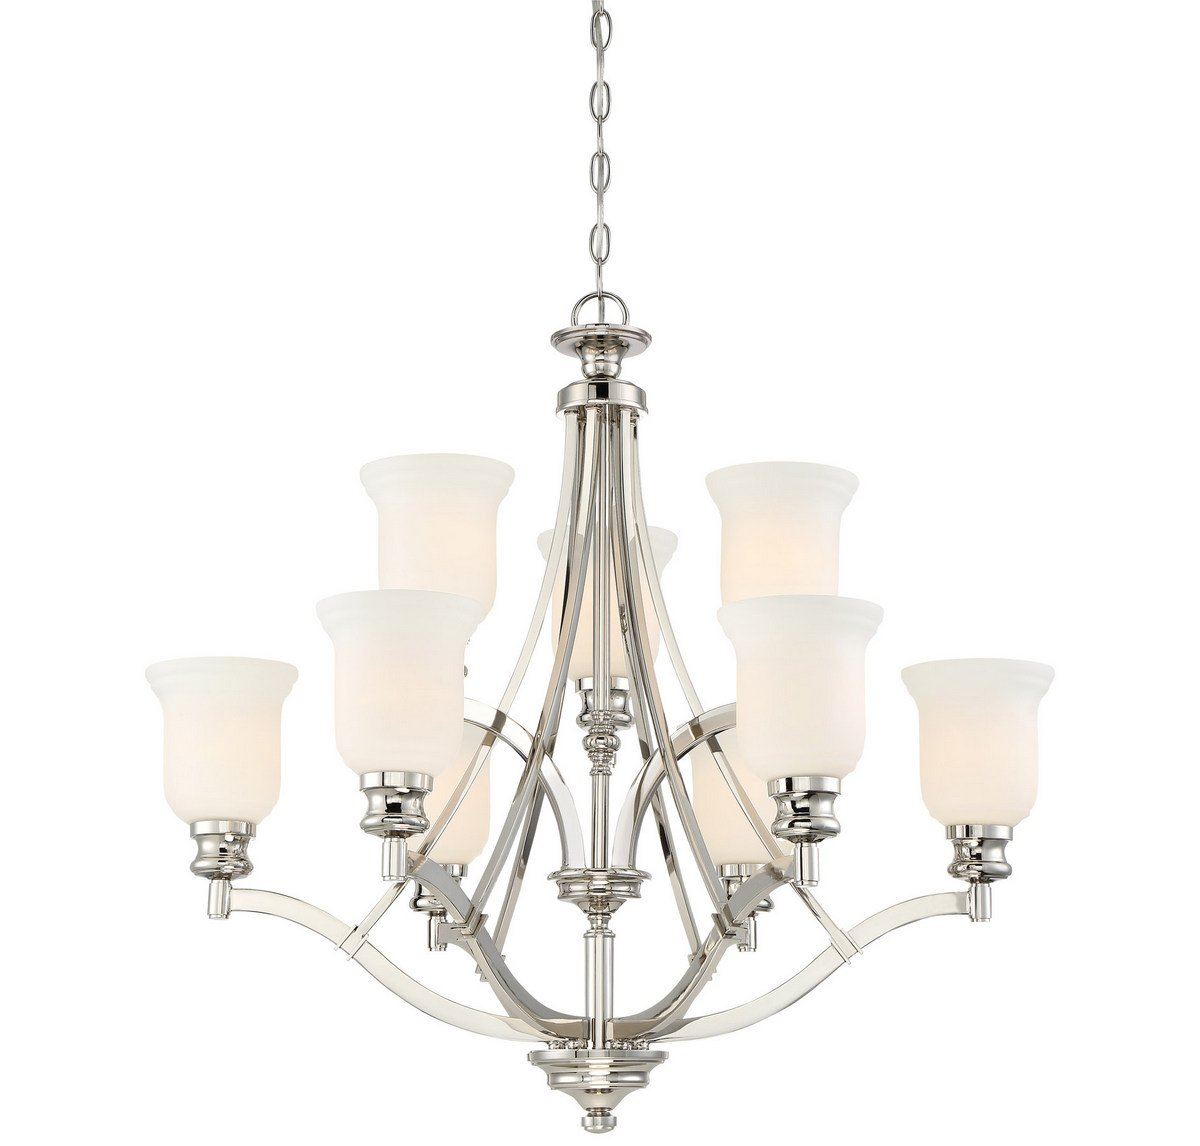 Minka Lavery Minka 3299-613 Contemporary Modern Nine Light Chandelier from Audrey`S Point Collection in Chrome, Pol. Nckl.Finish, 31.25 Inches S 31.25 Inchesnine